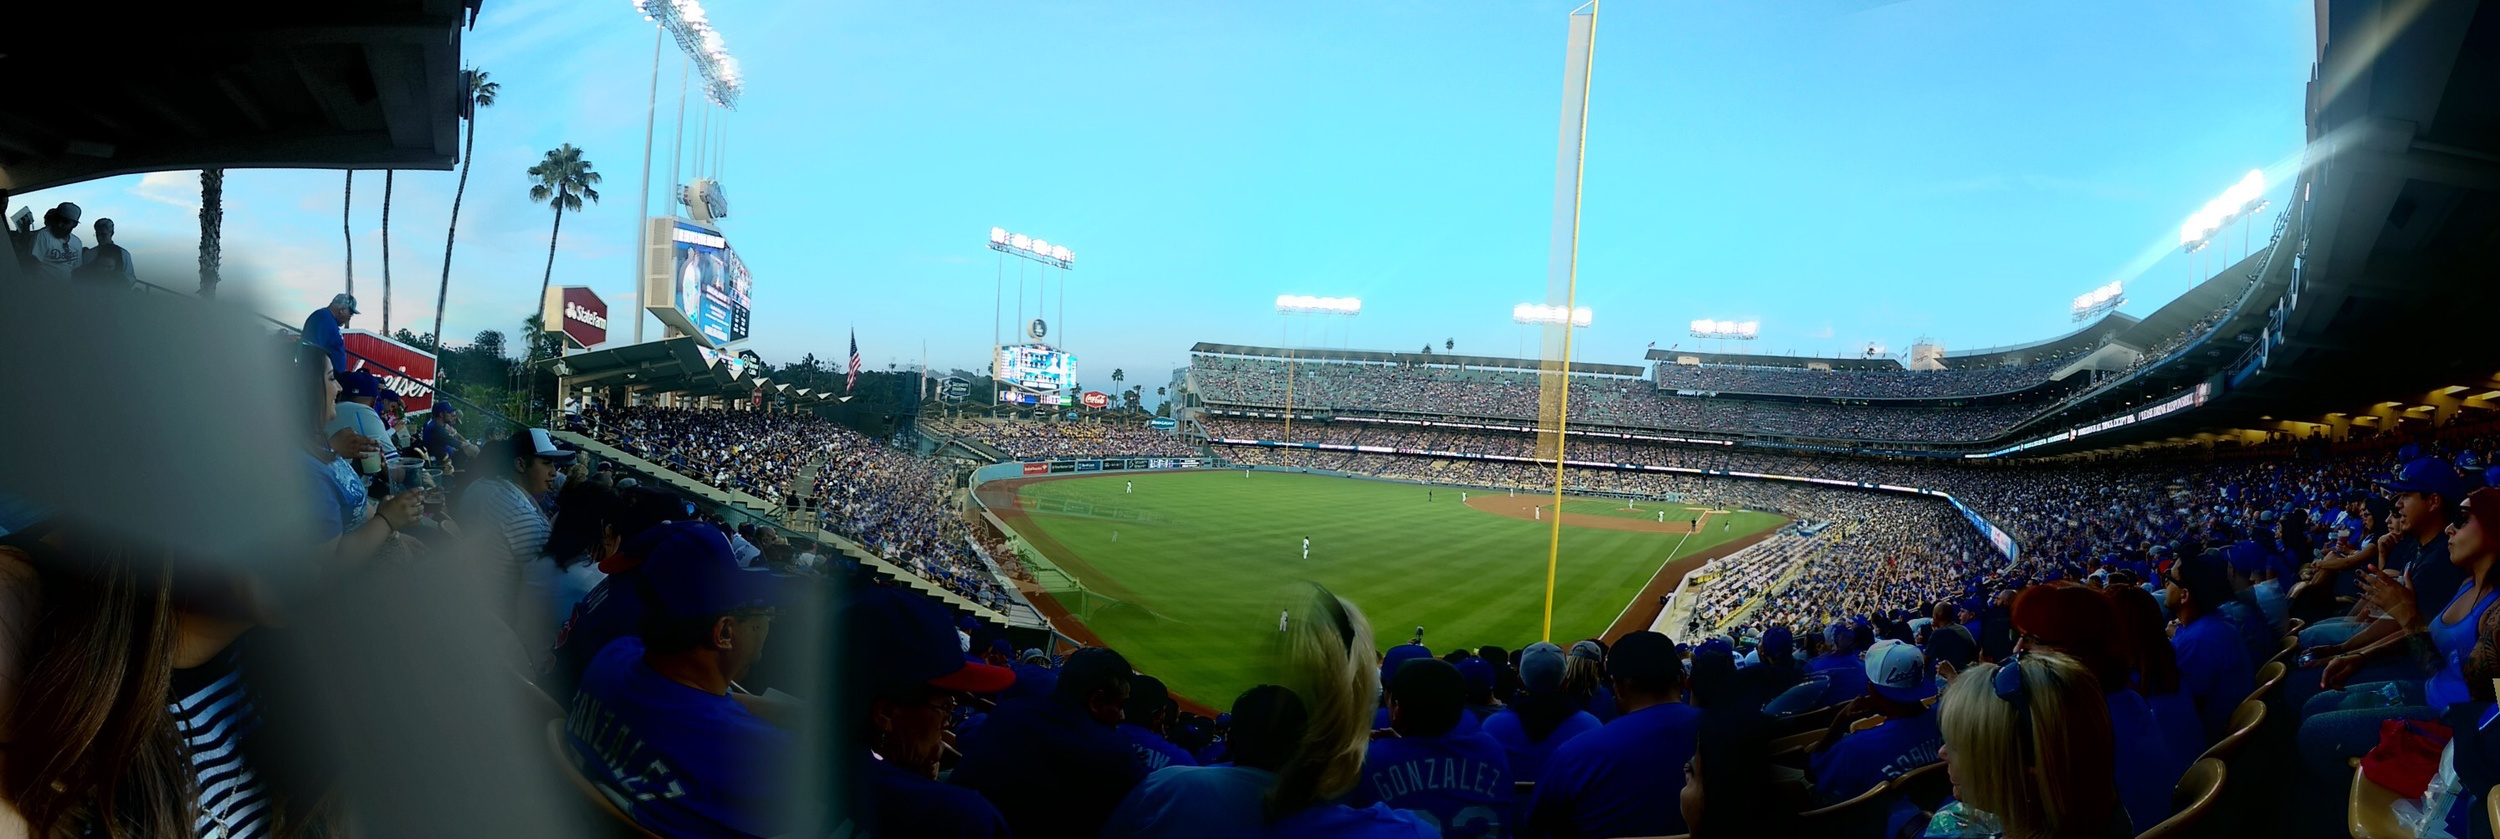 Dodger Stadium from our seats!